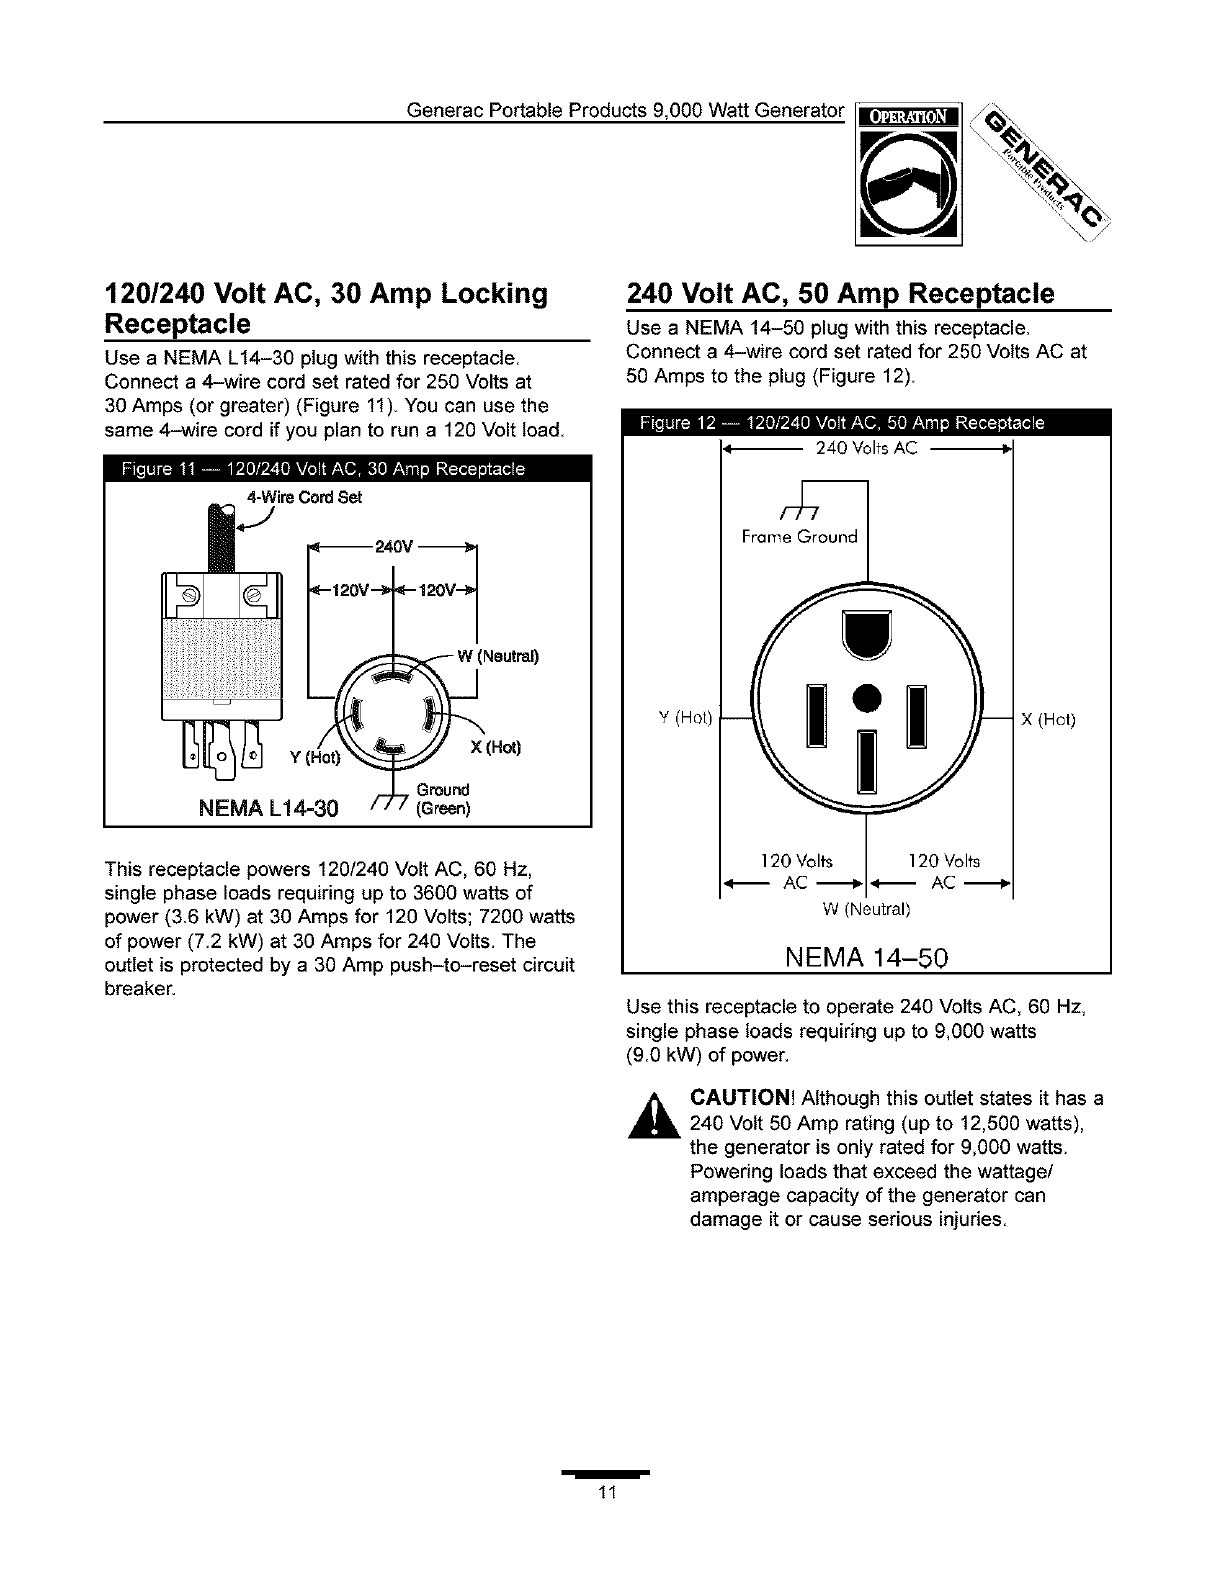 Generac 1338 1 User Manual Generator Manuals And Guides L0403233 120 240v Wiring Diagram Generacportableproducts9000wattgenerator 240